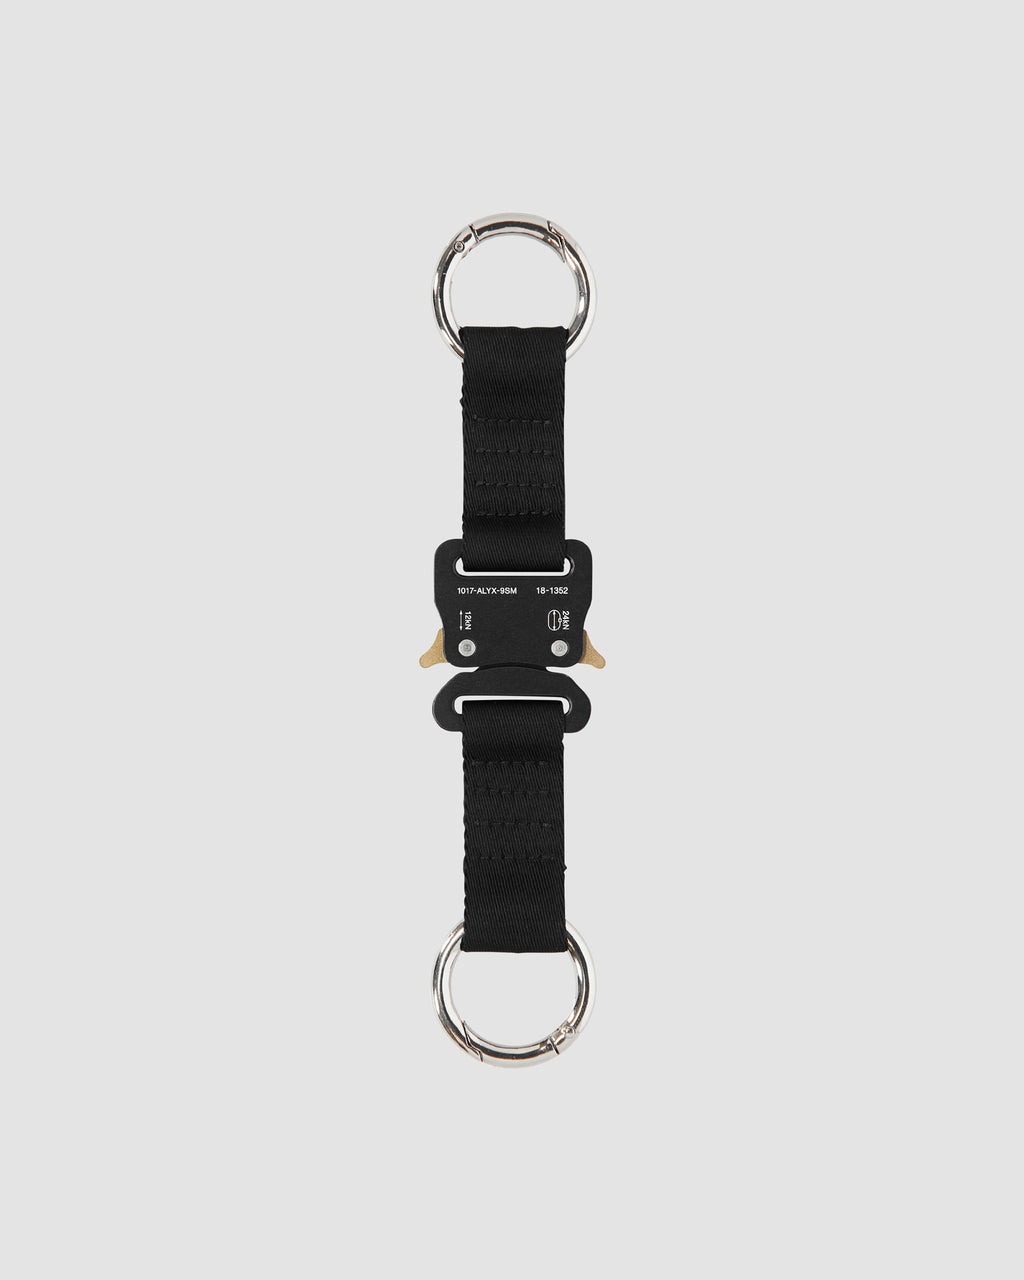 1017 ALYX 9SM | CLASSIC KEYRING | Keychain | Accessories, BLACK, Google Shopping, Keychain, KEYCHAINS, Man, S20, SS20, UNISEX, Woman